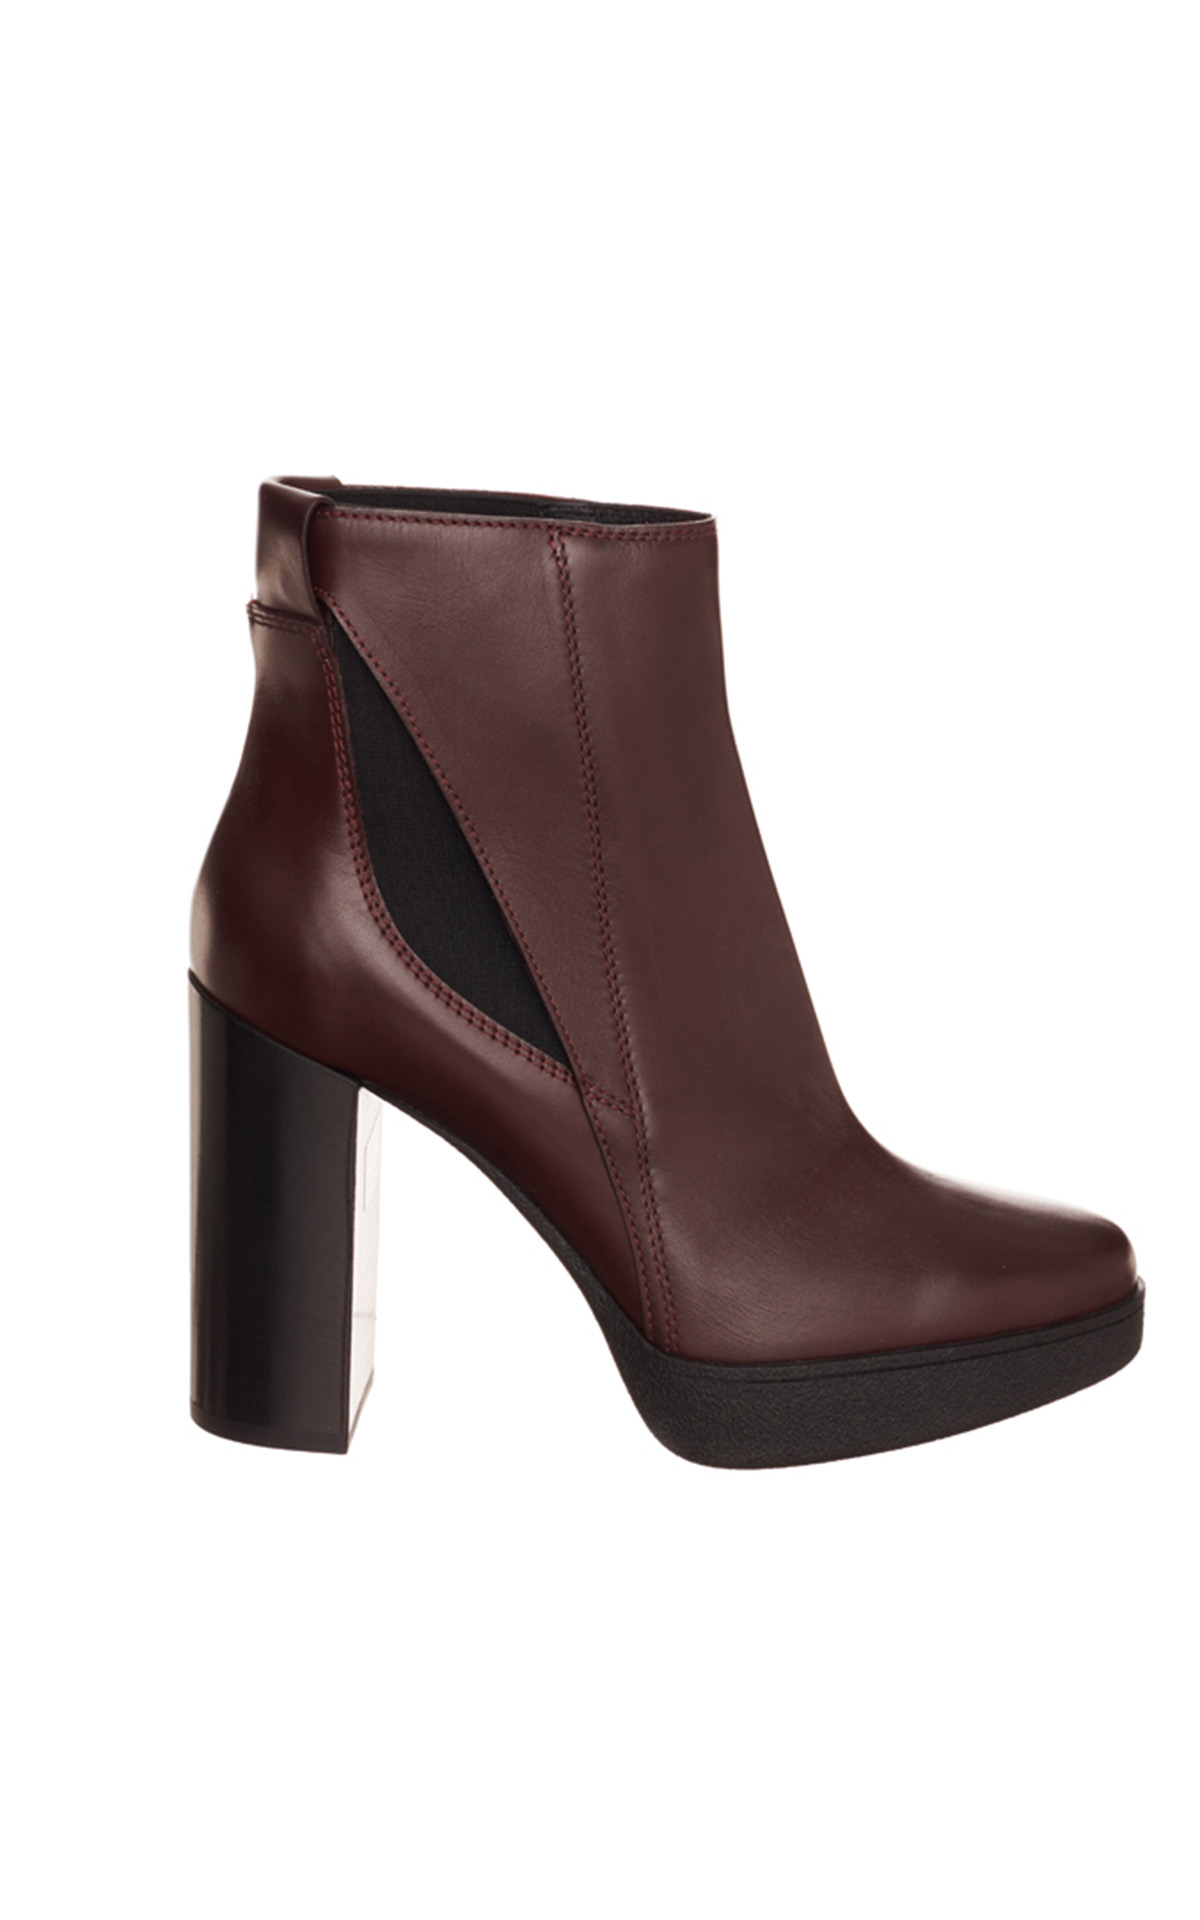 Tod's women's high heel leather boots from Bicester Village